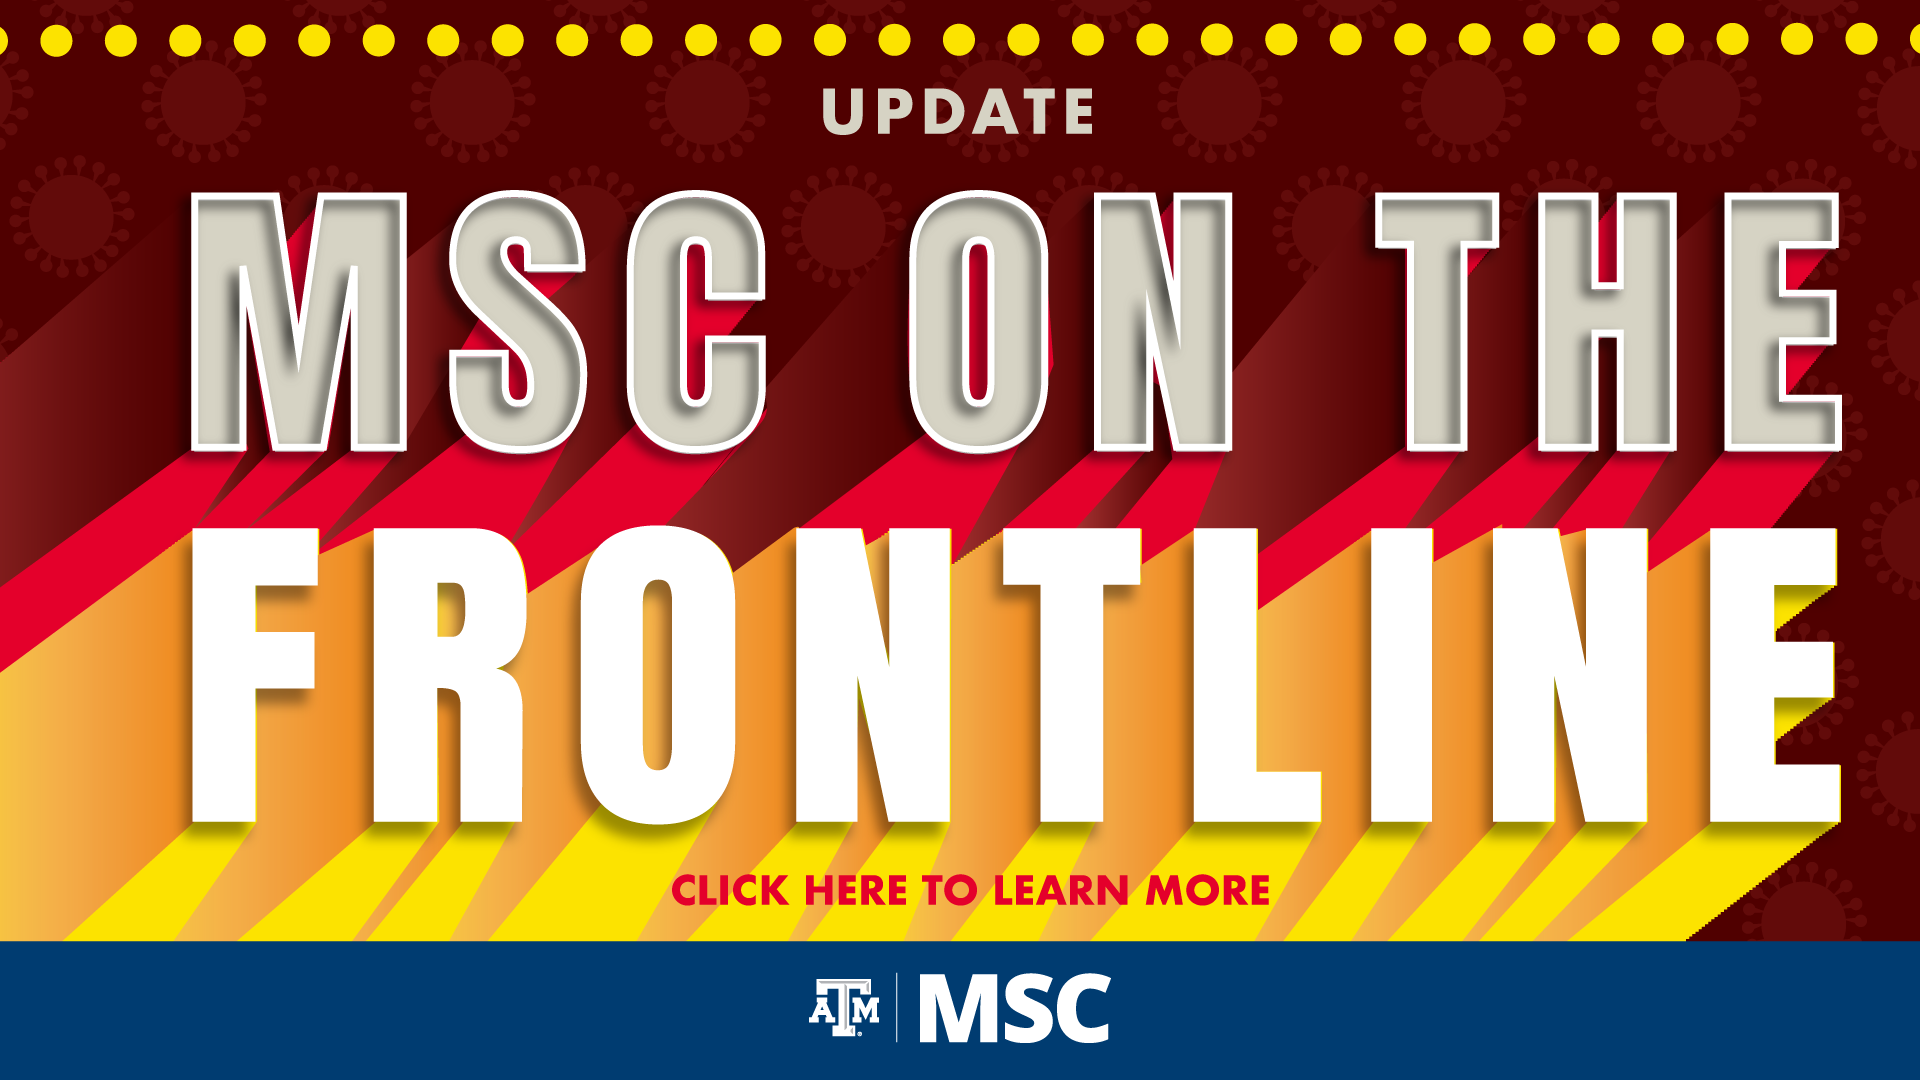 MSC on the Frontline Click Here to learn more